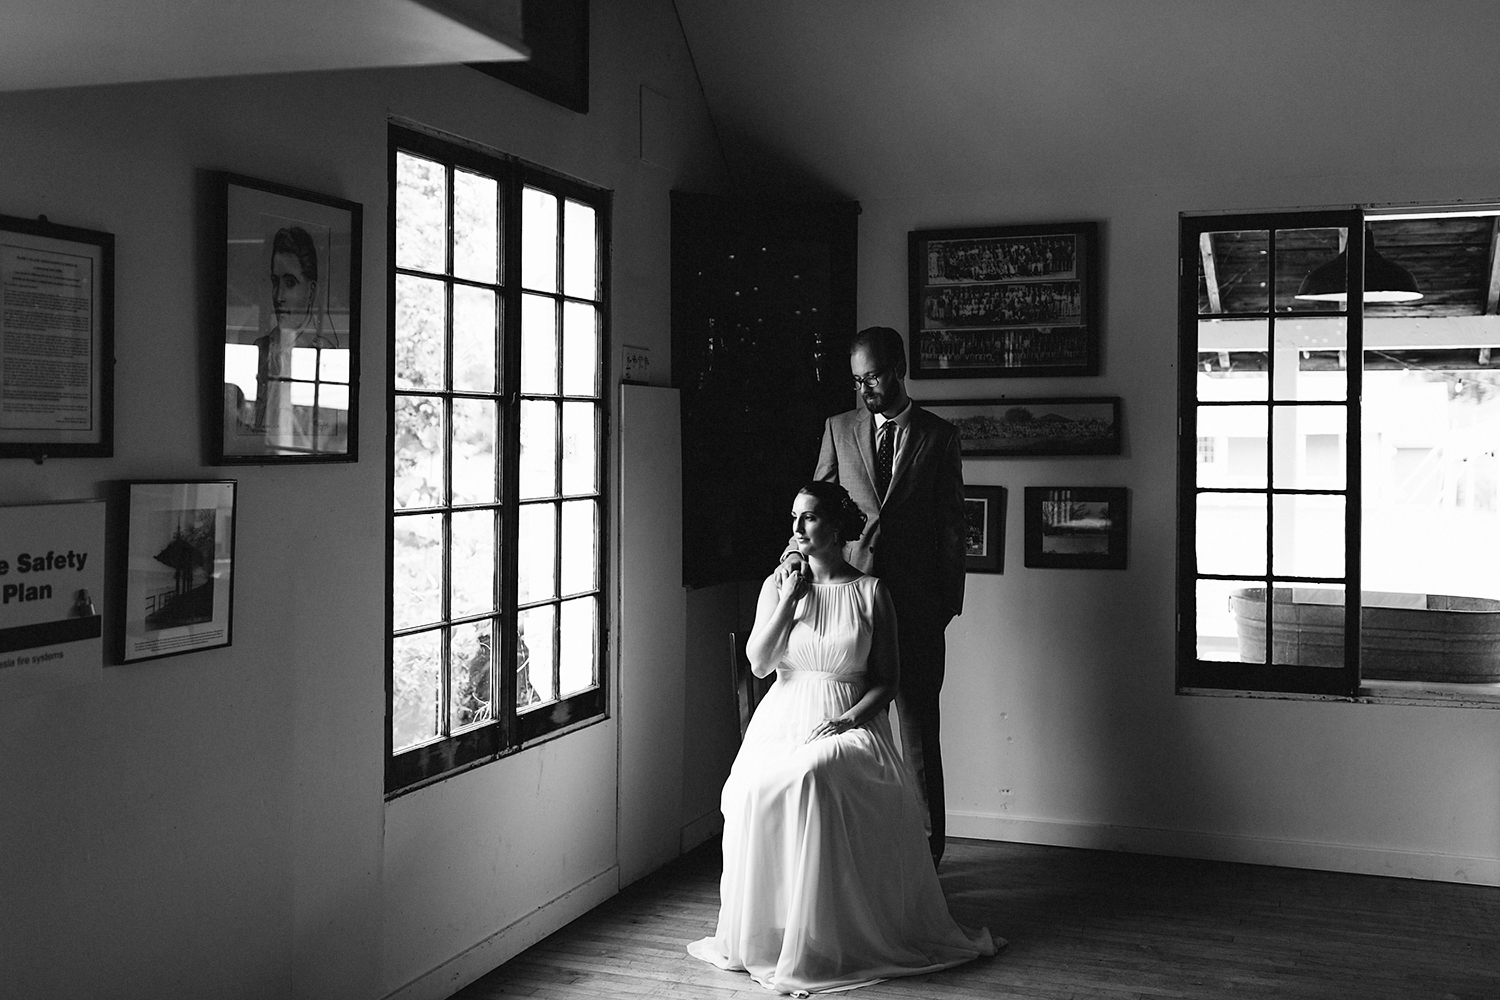 Toronto-Island-Wedding-Toronto-Best-Film-Wedding-Photographers-3b-photography-analog-photography-wards-island-clubhouse-details-old-photographs-vintage-rustic-venue-bride-and-groom-formal-portrait-moody-romantic.jpg